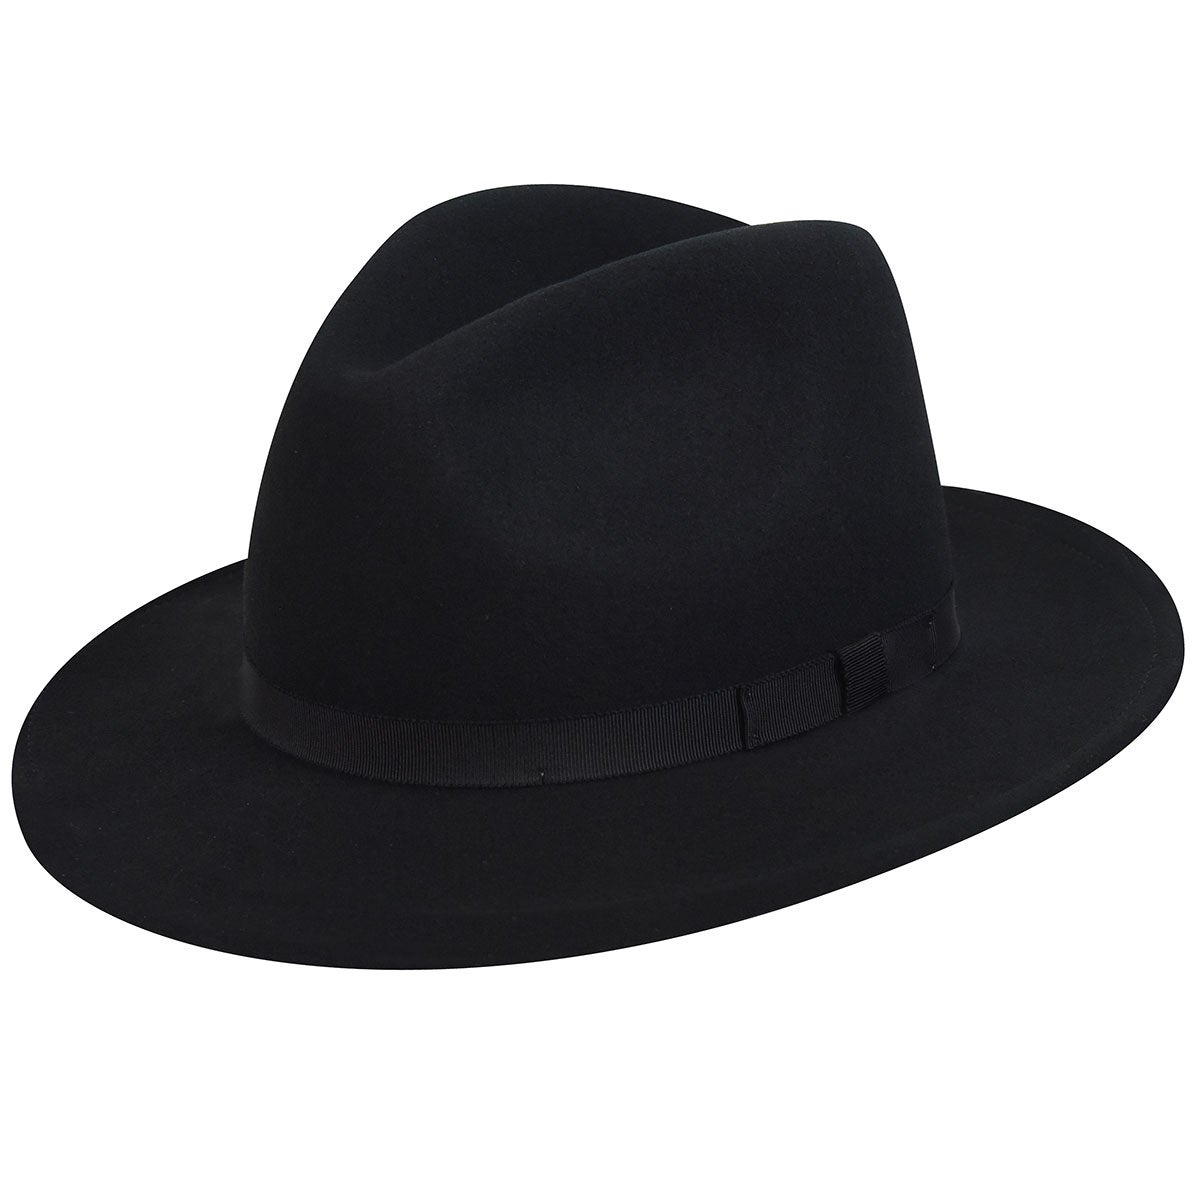 1930s Style Mens Hats and Caps Wilton Fedora $66.00 AT vintagedancer.com